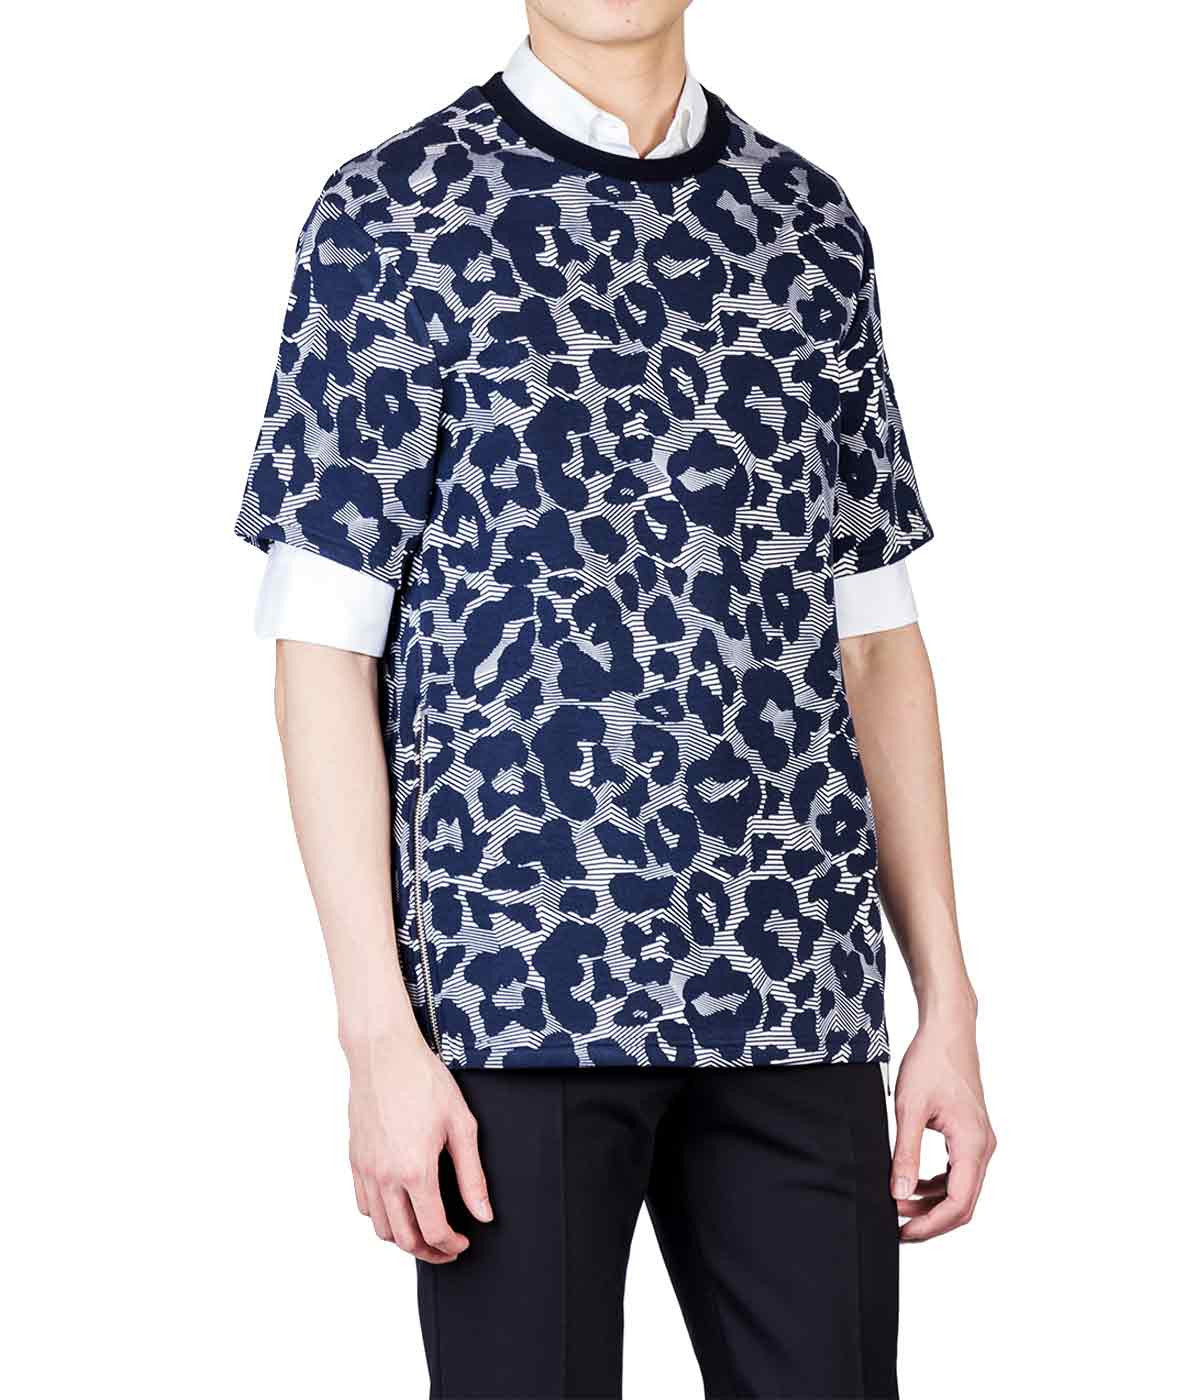 Bonded Neoprene Animal Print Top